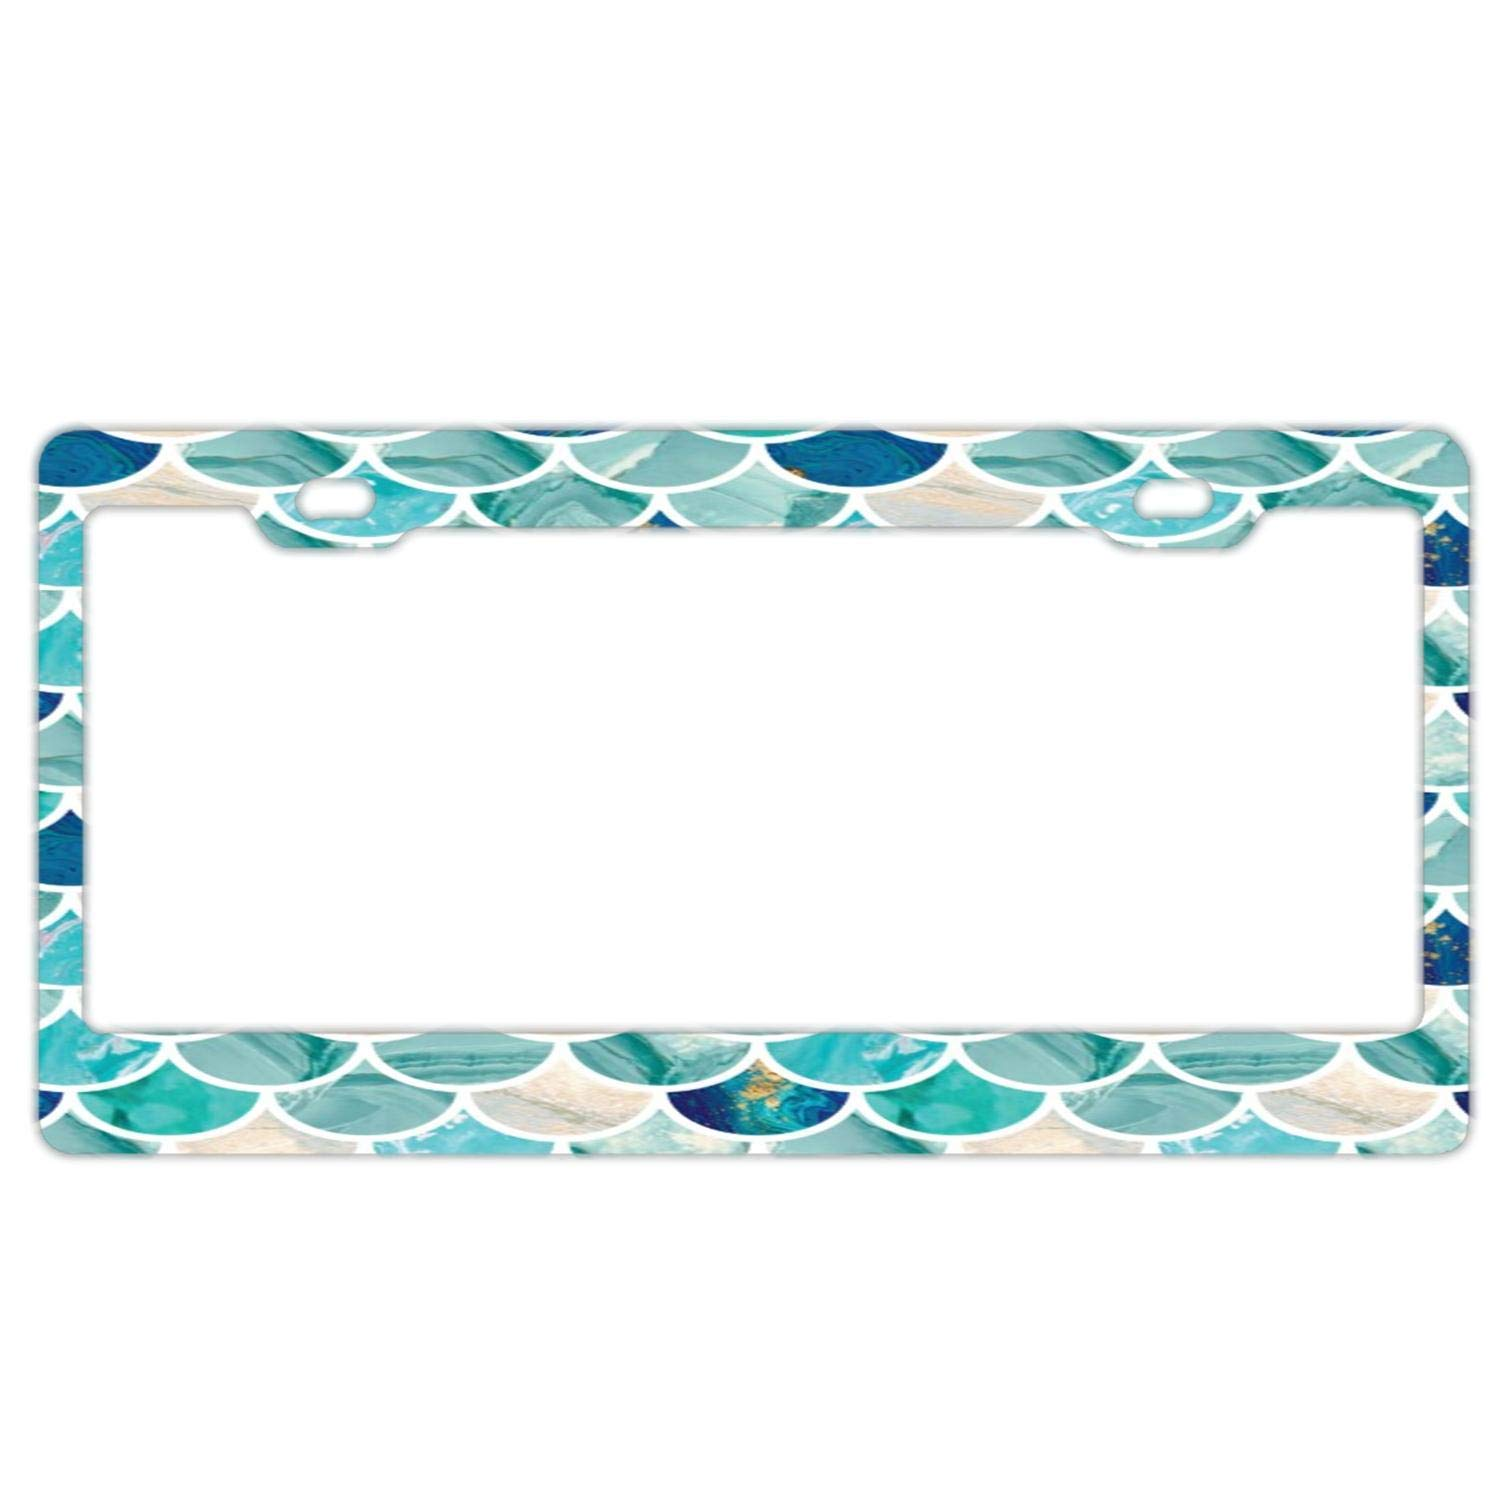 Abstract Aqua Turquoise Marble Mermaid Fish Scales License Plate Frame Car Licence Plate Covers Auto Tag Holder 6 x 12